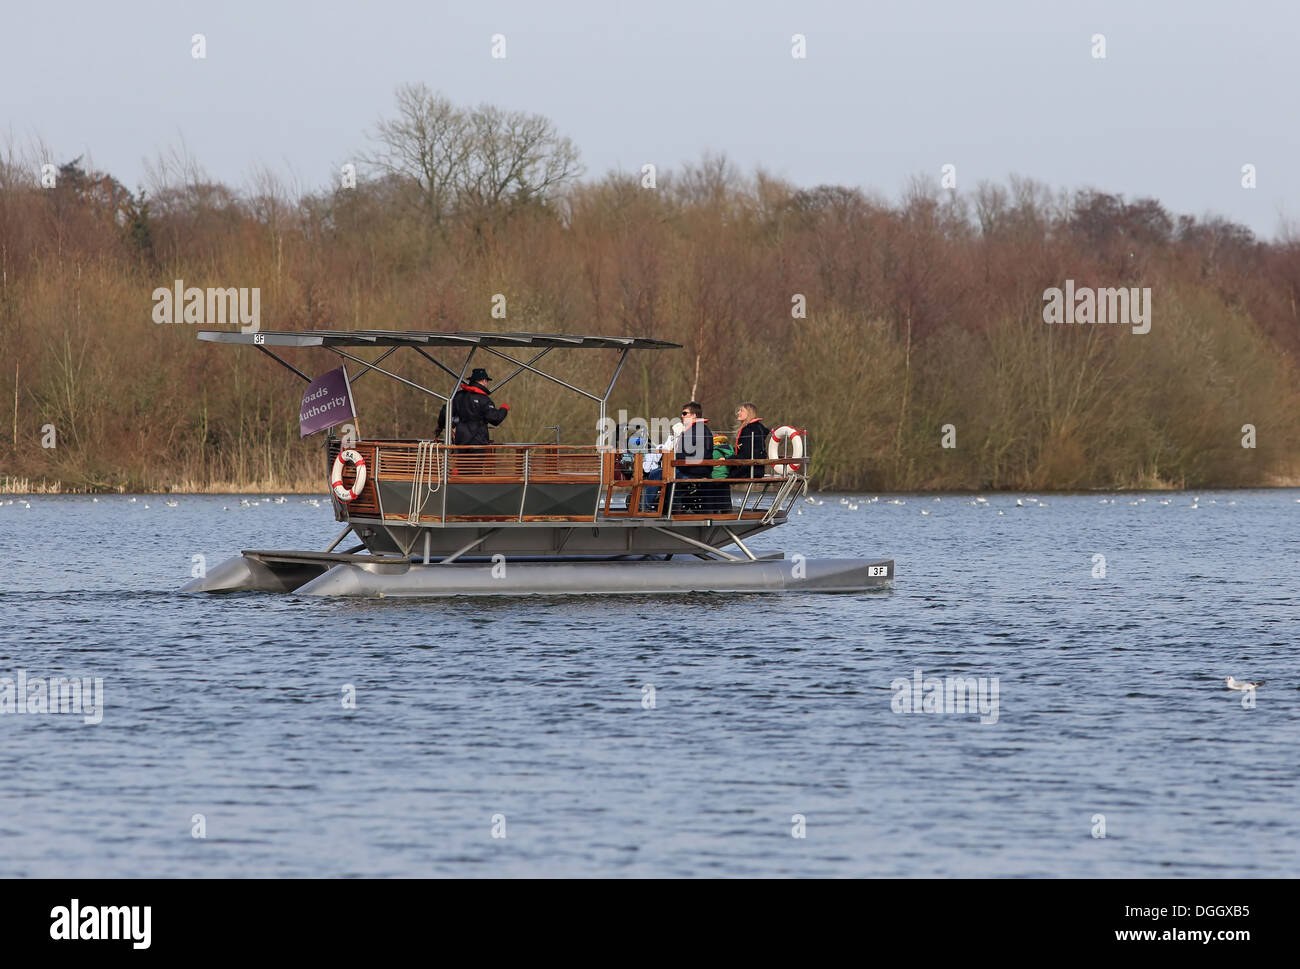 Solar-powered electric boat with tourists on river, Norwich, River Yare, The Broads, Norfolk, England, April - Stock Image